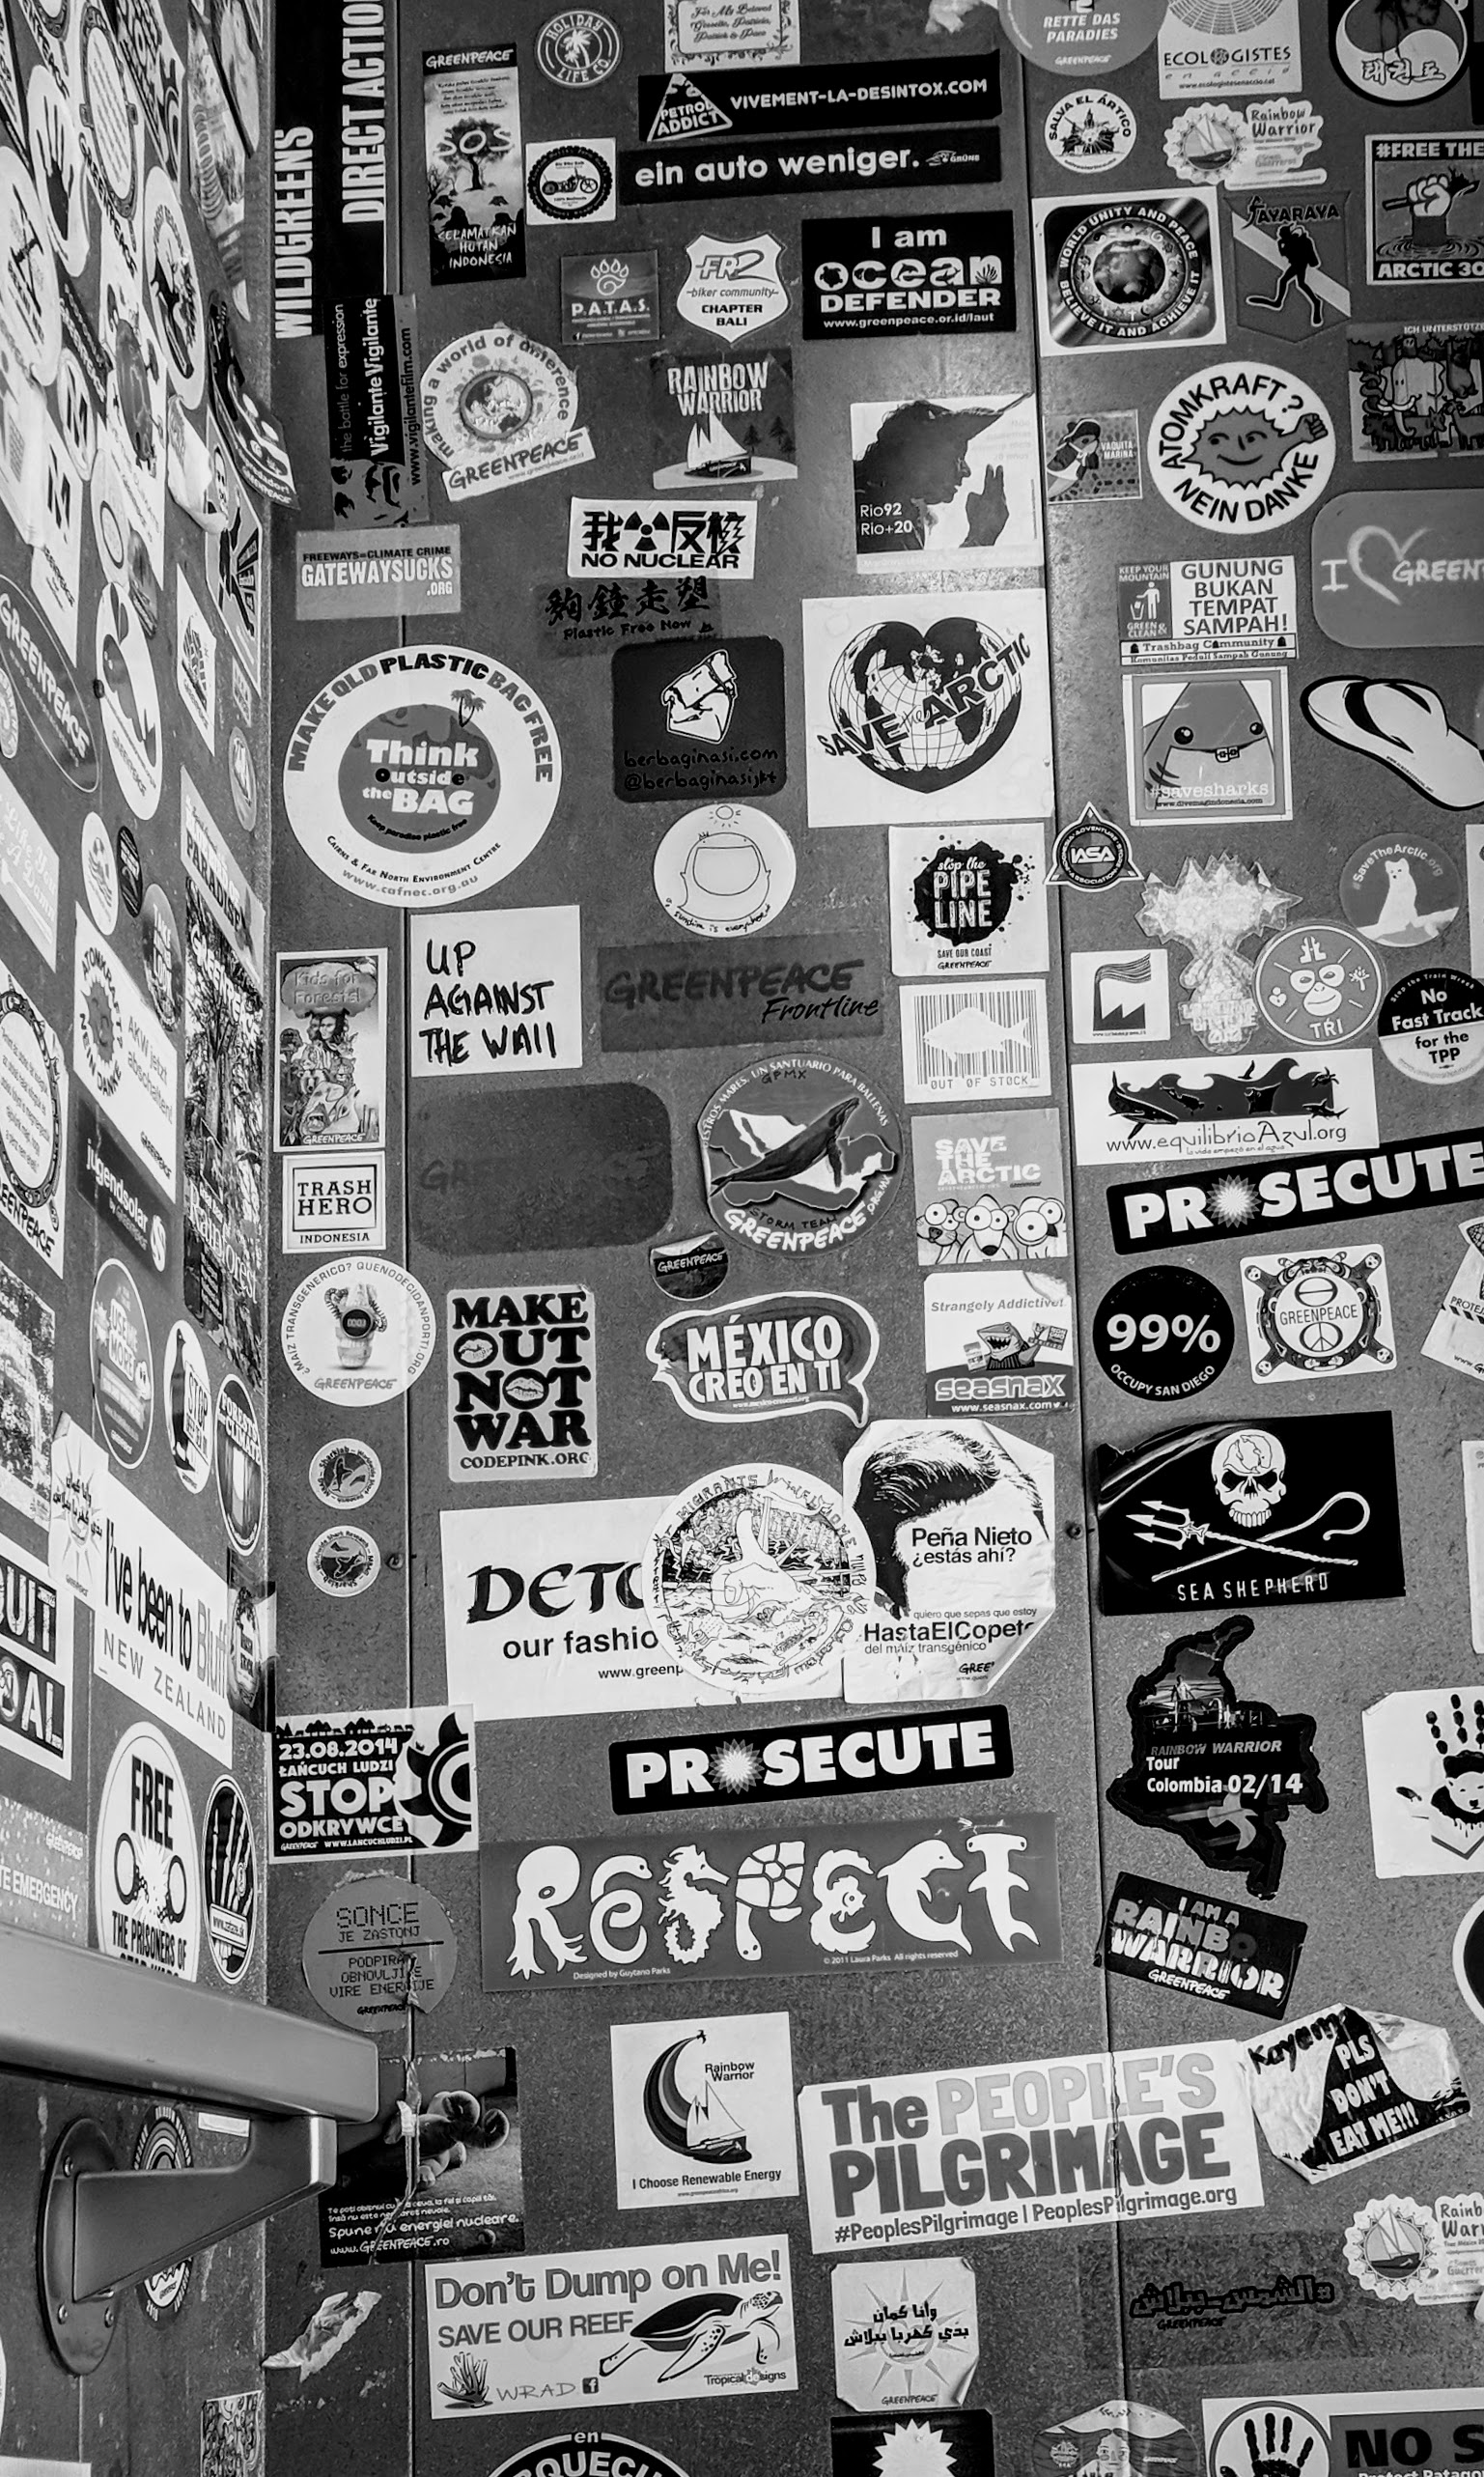 Protest stickers from around the world as seen in the Rainbow Warrior